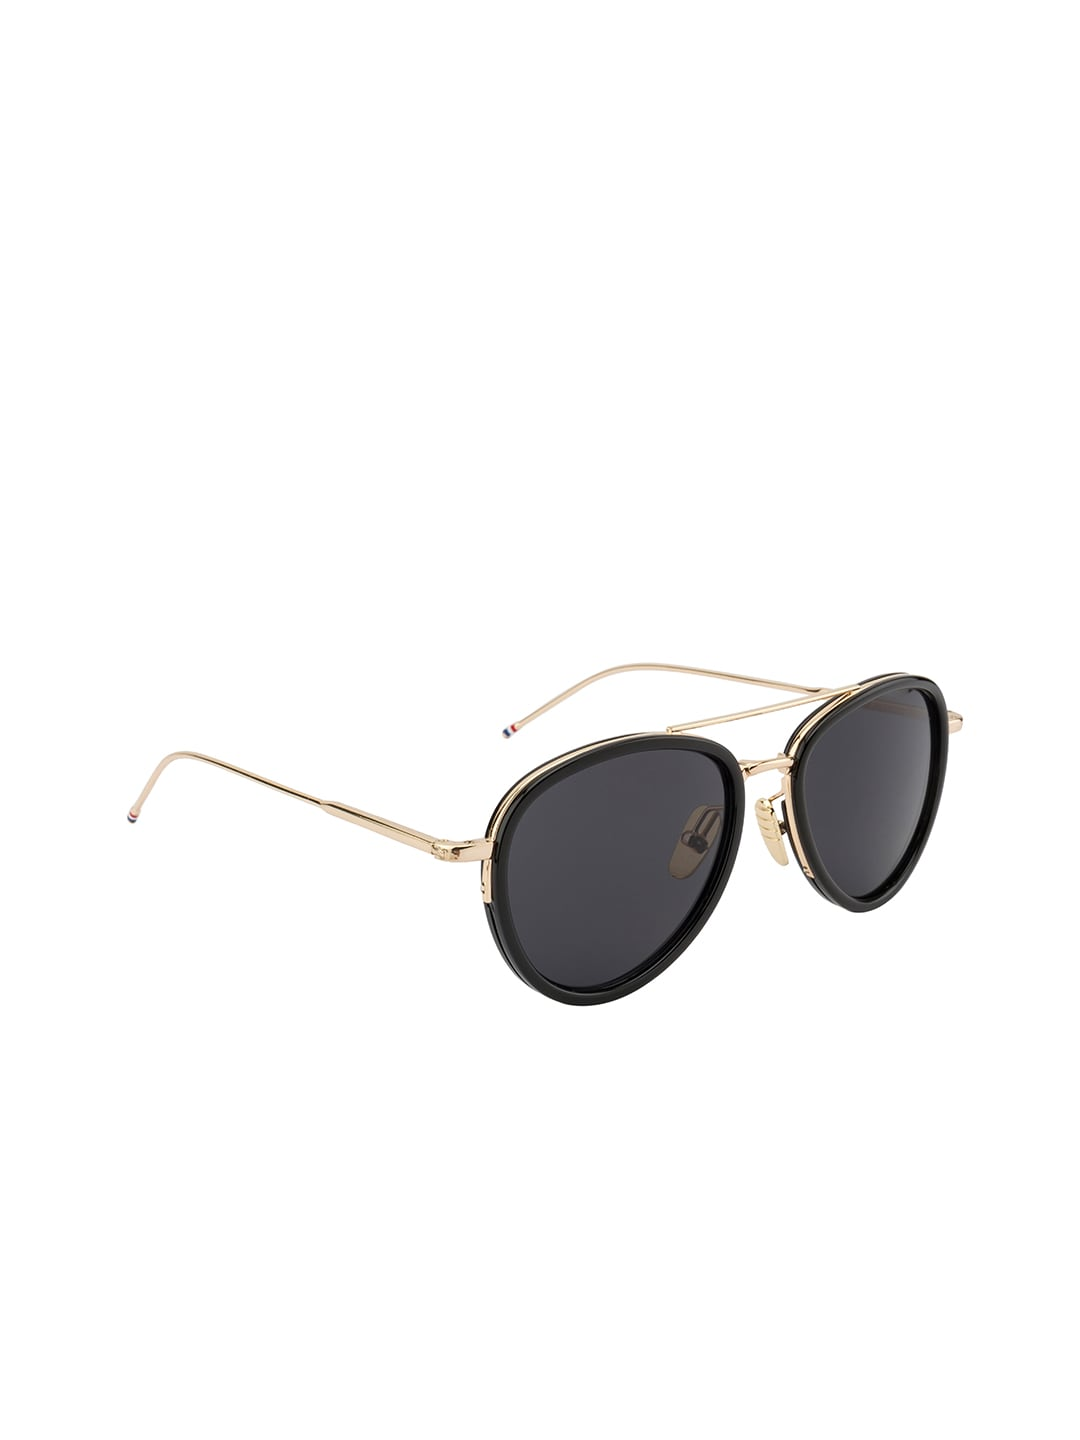 9150406e56 Aviator Sunglasses - Buy Aviator Sunglasses Online in India - Myntra